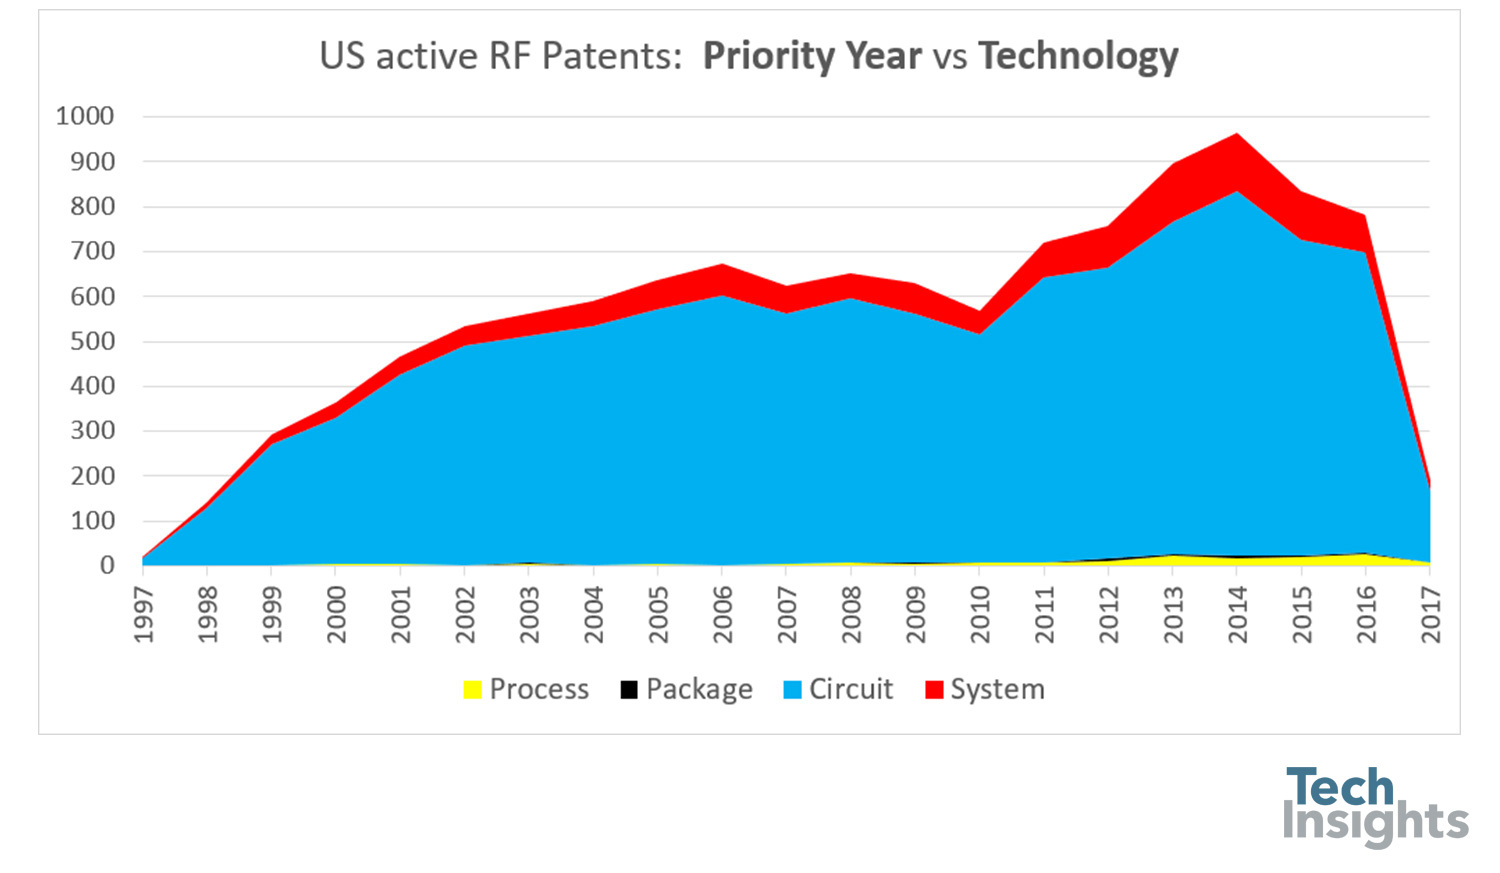 Patents in the mobile RF space are mostly related to circuits